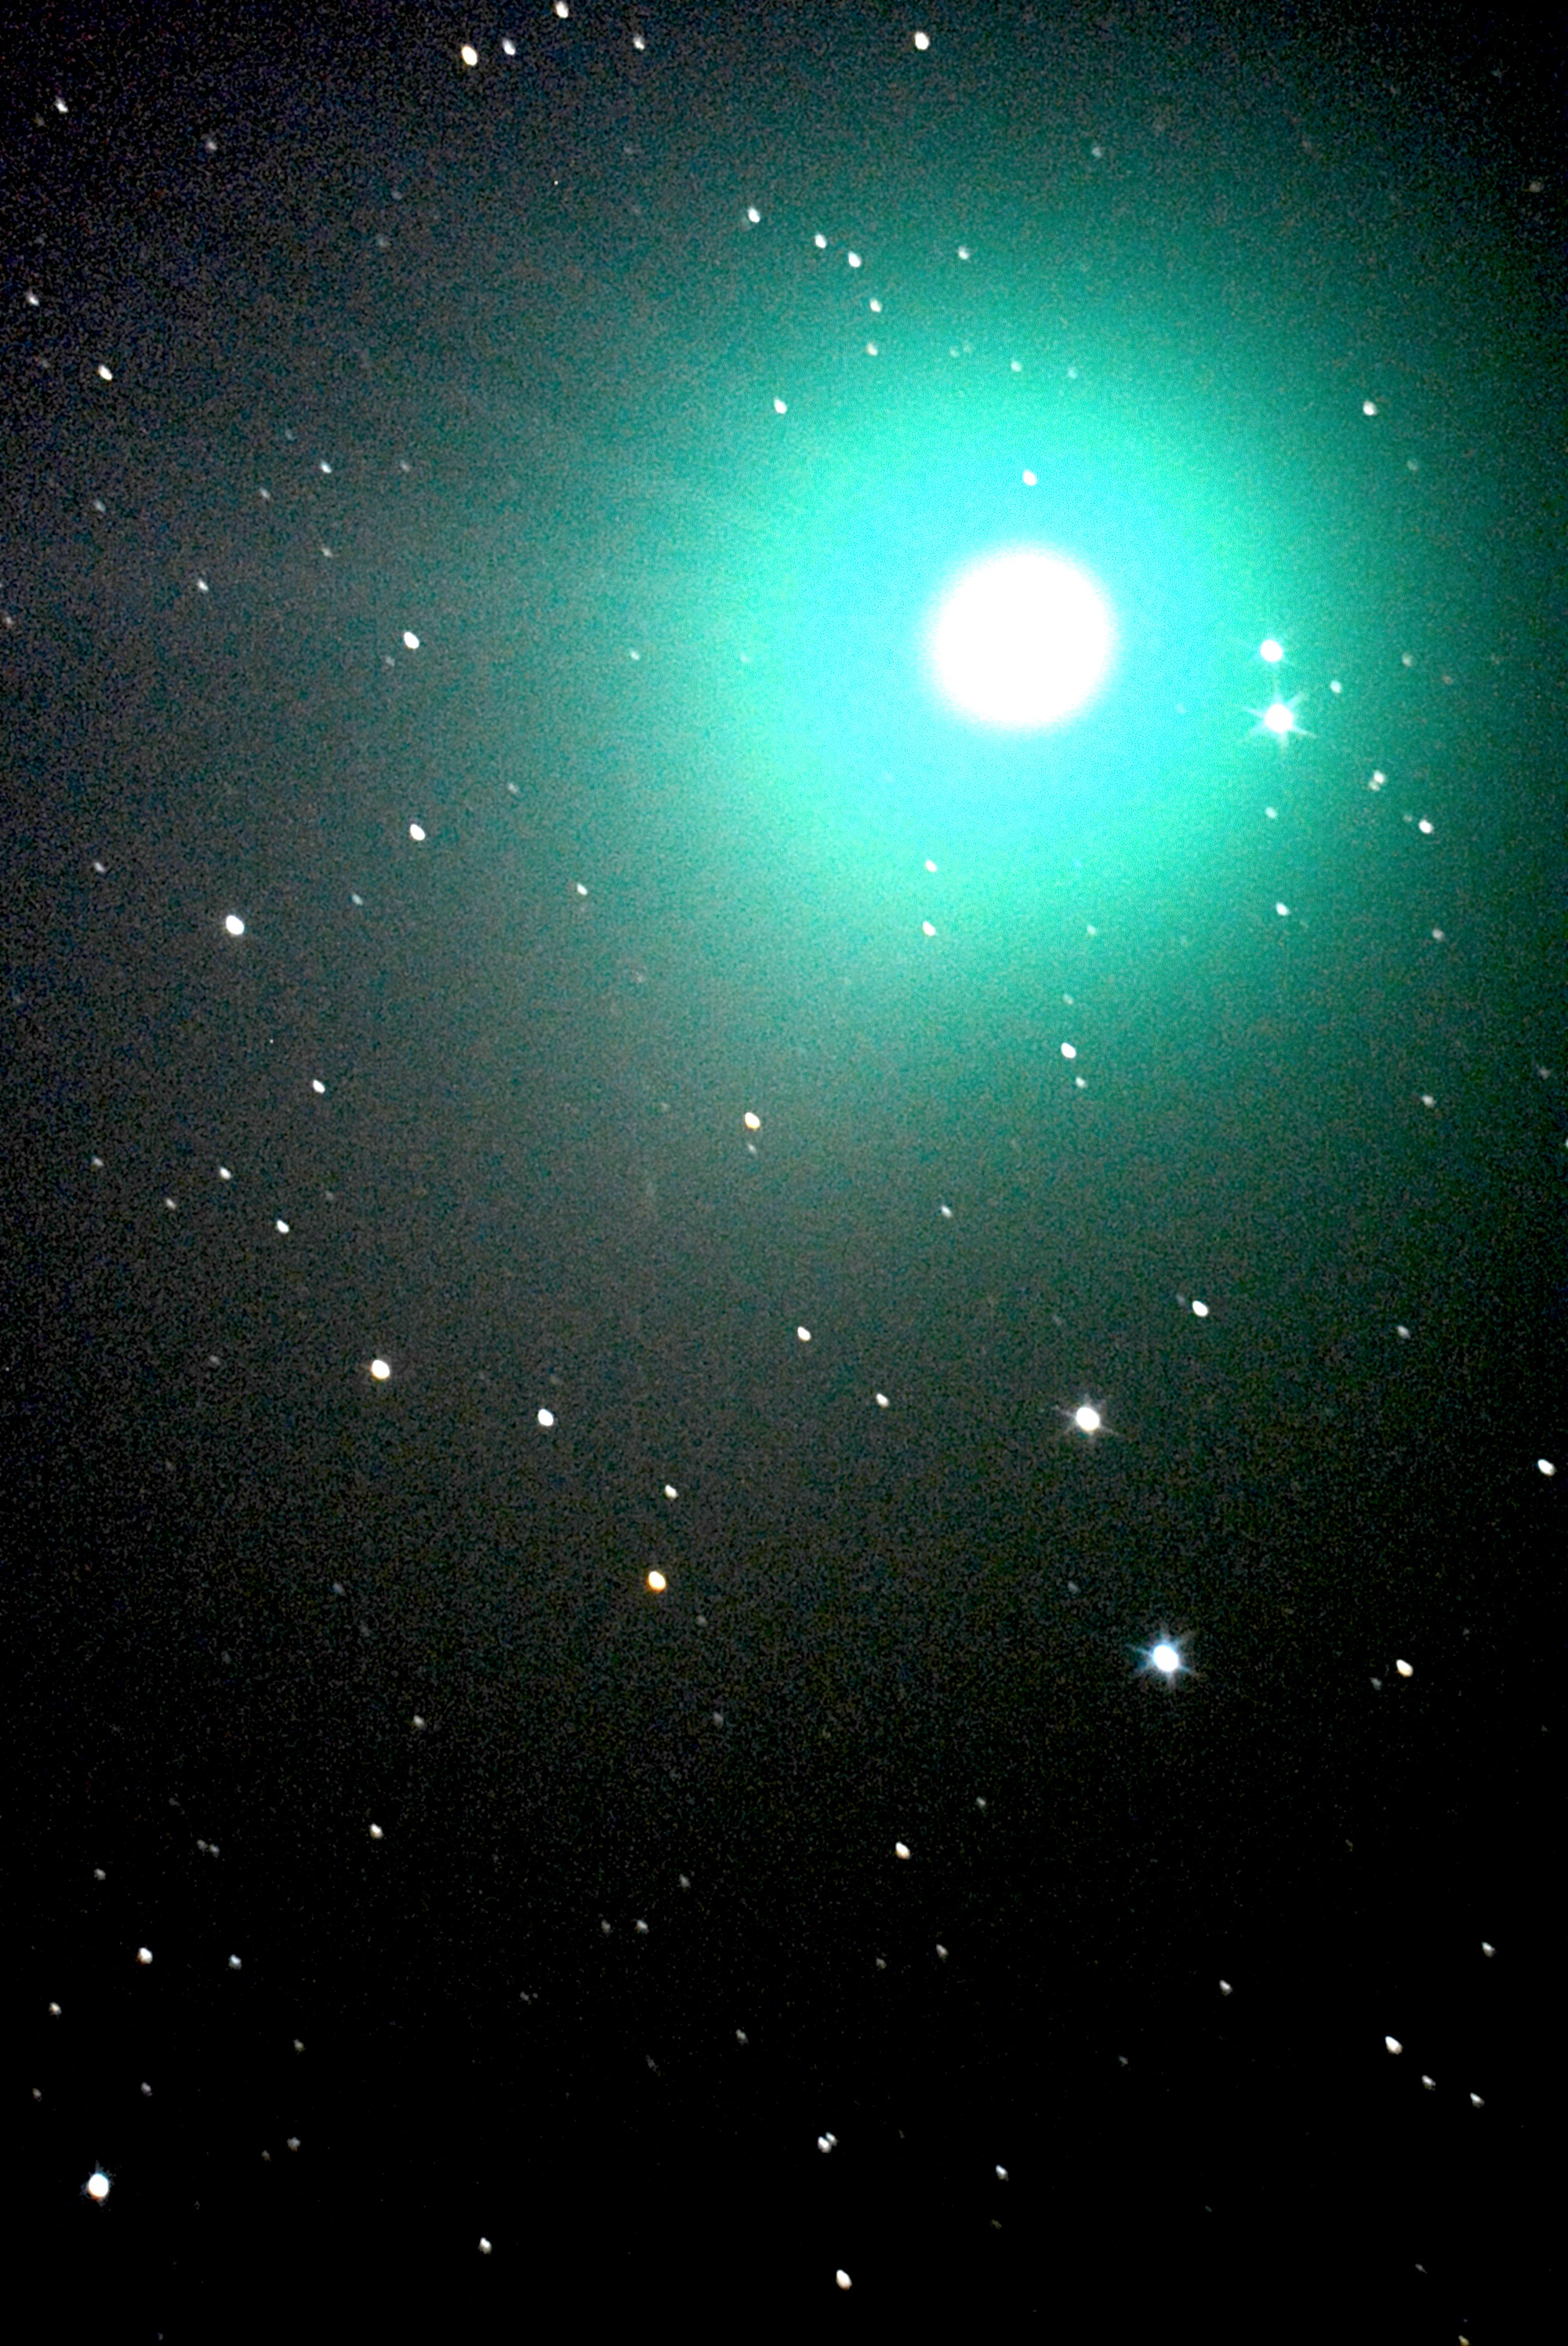 Green comet, bright planets visible in the night sky